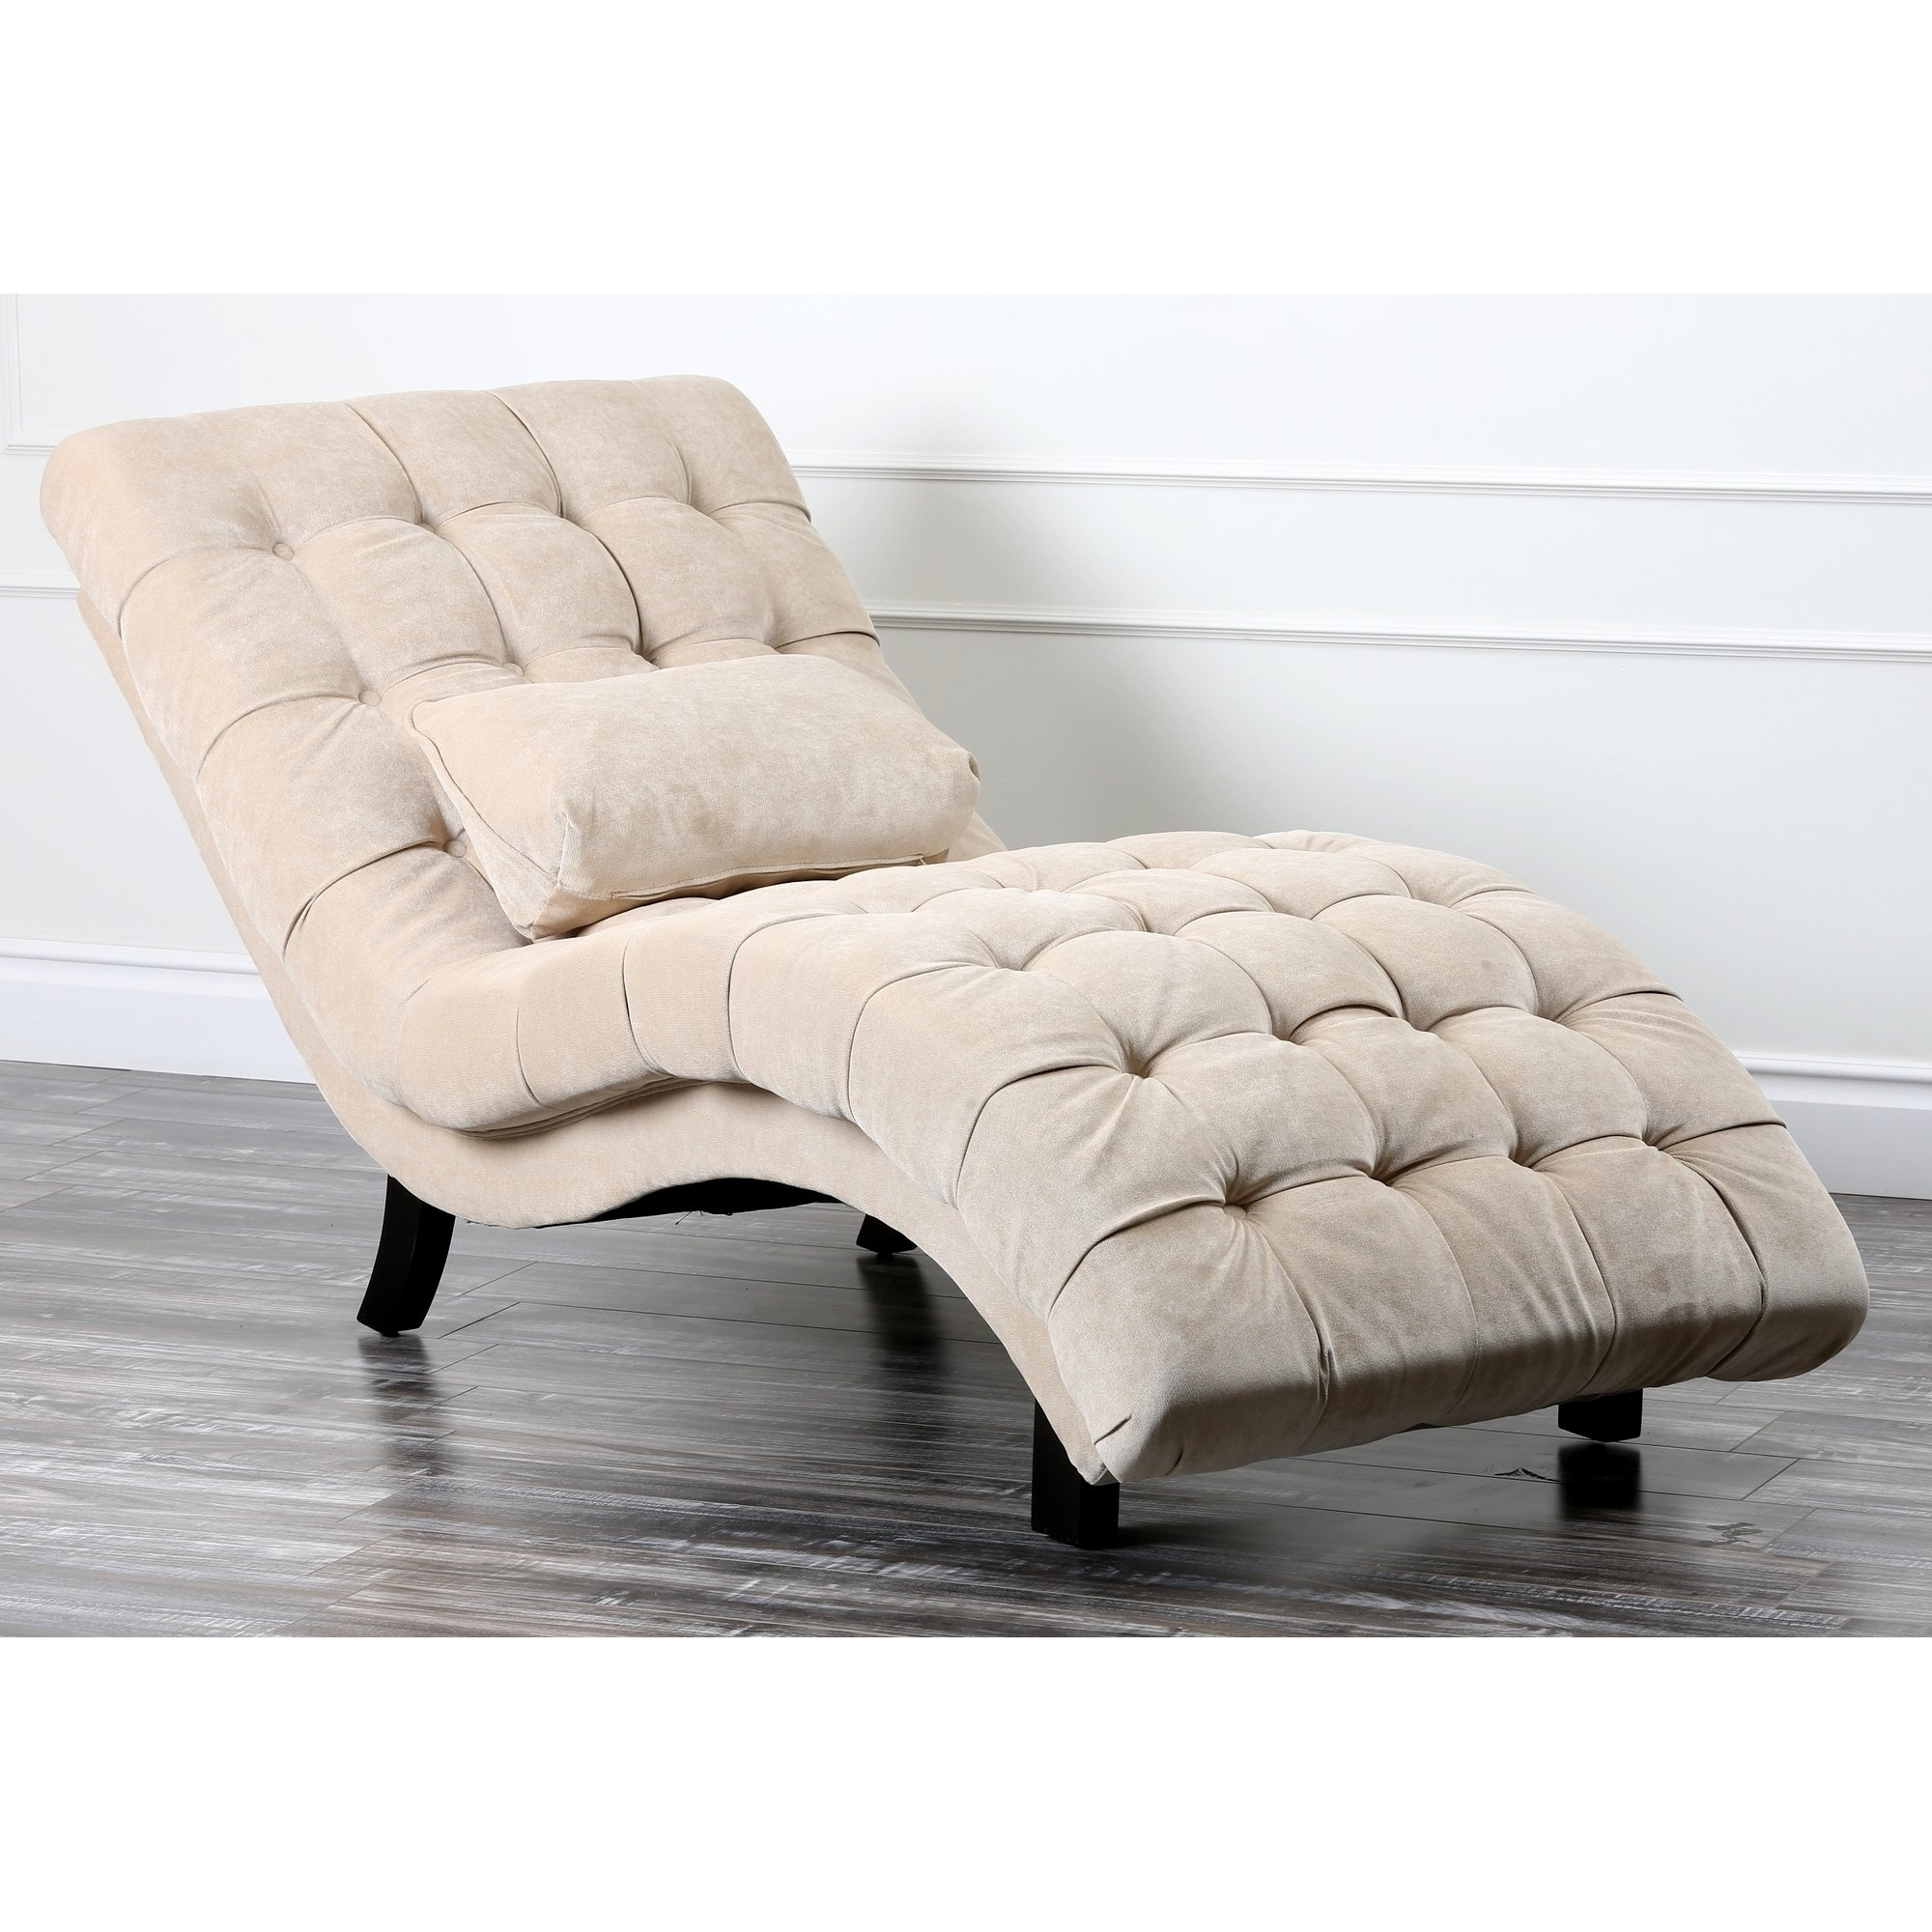 Alessia Chaise Lounge Chair Tufted • Lounge Chairs Ideas regarding Favorite Alessia Chaise Lounge Tufted Chairs